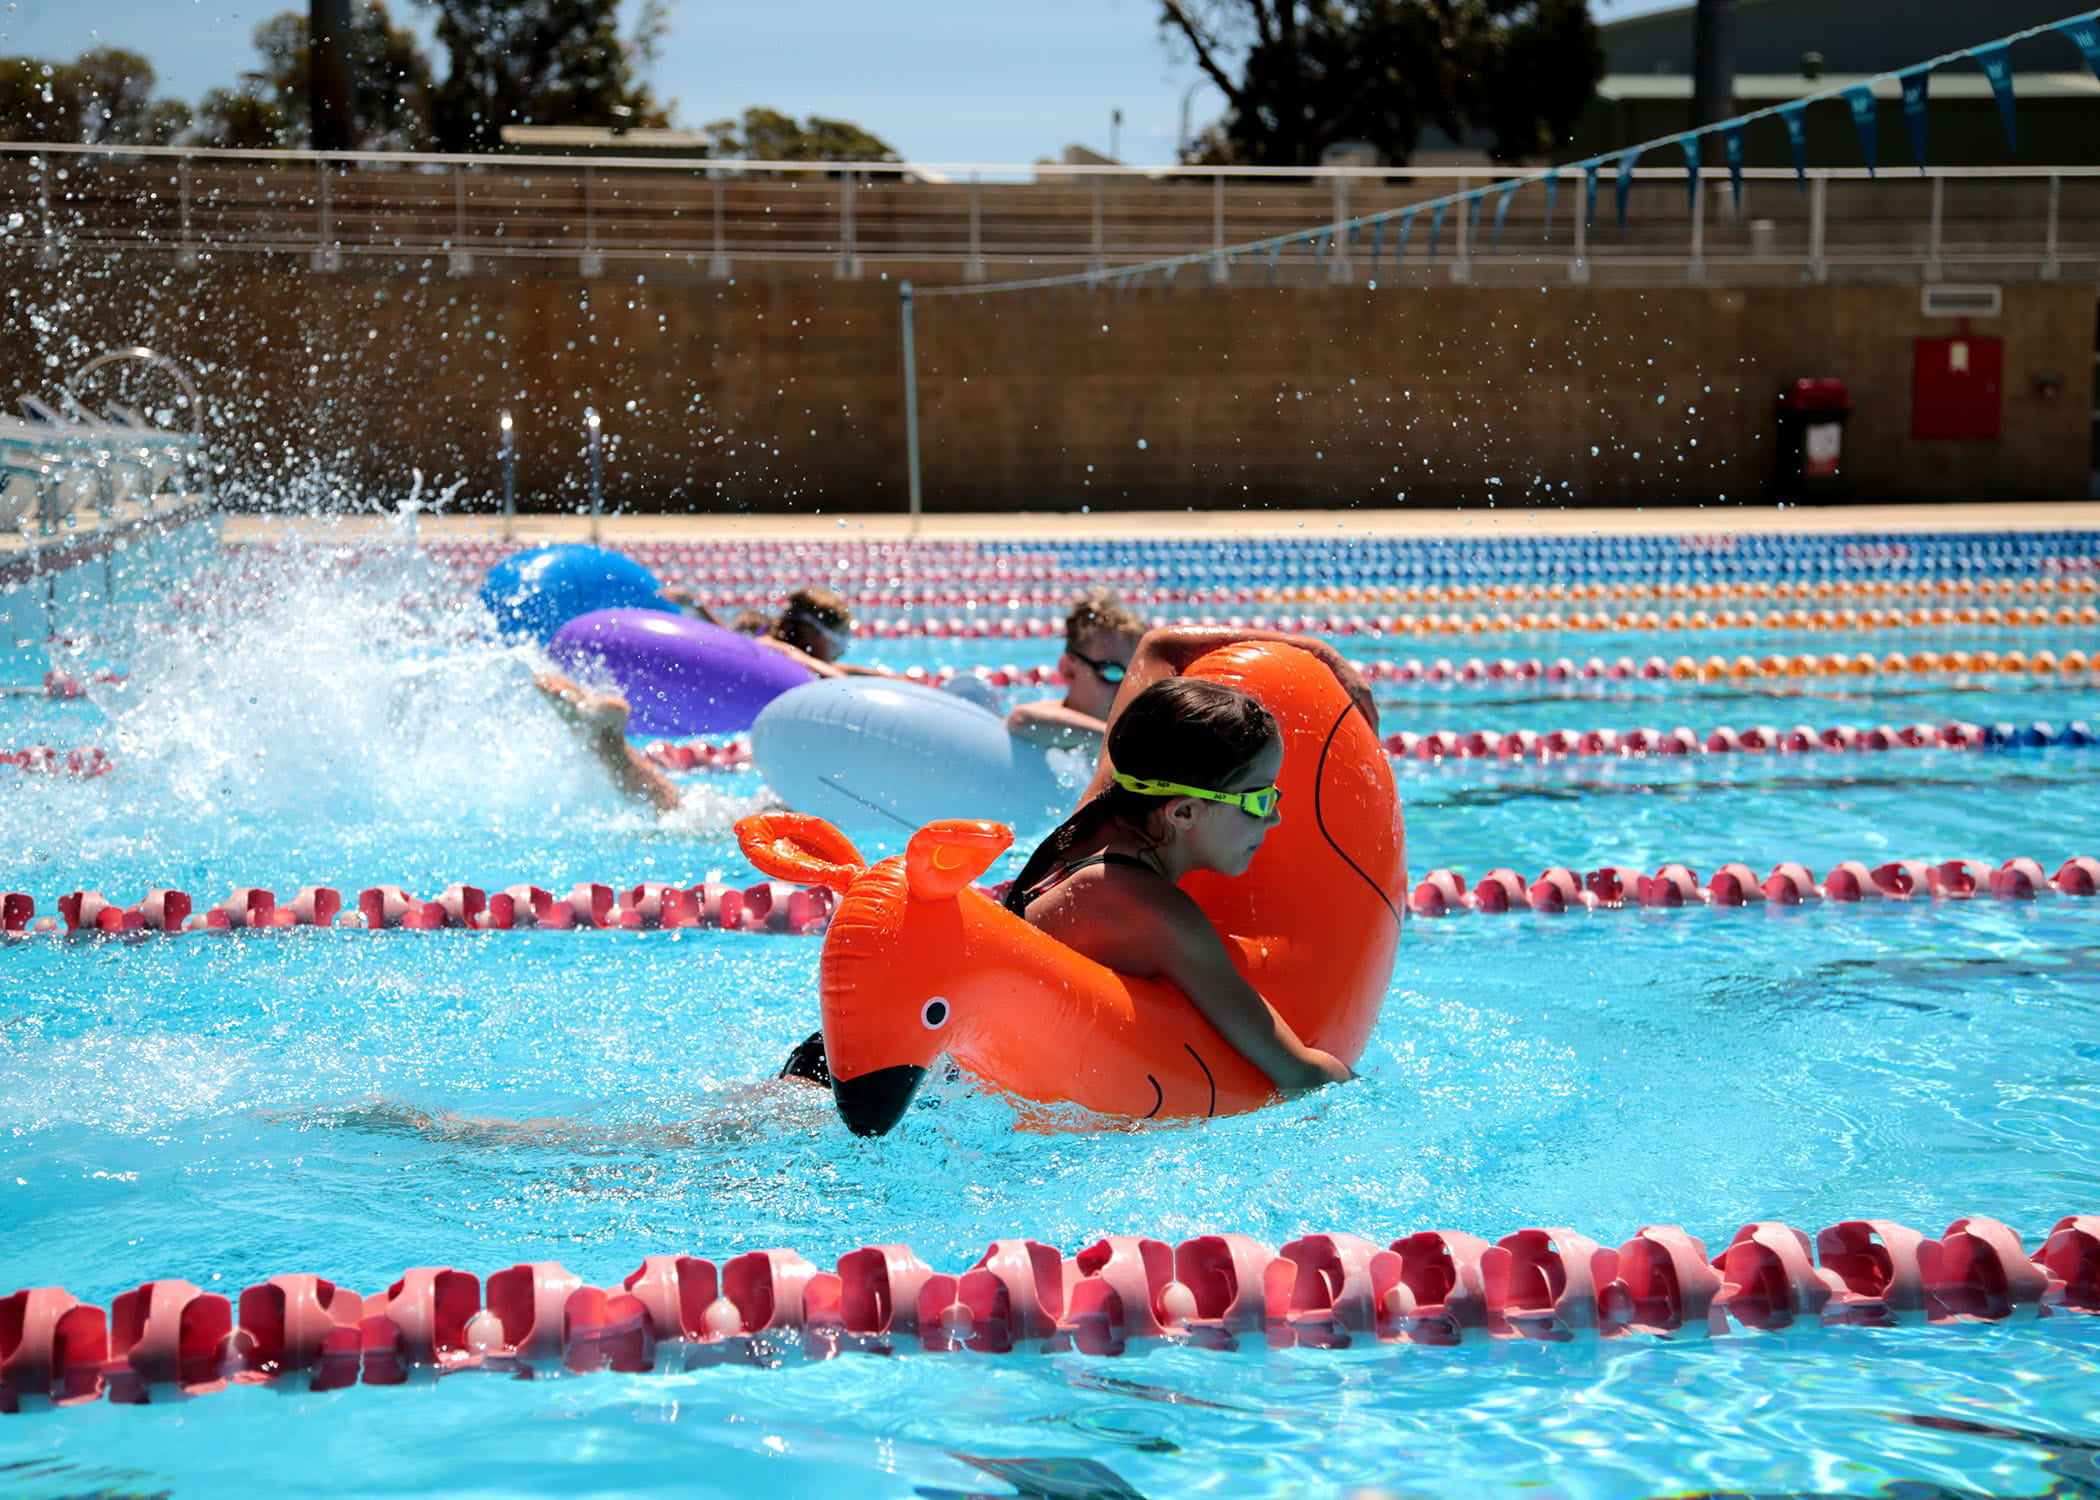 Junior Lifeguard Challenge inflatable race